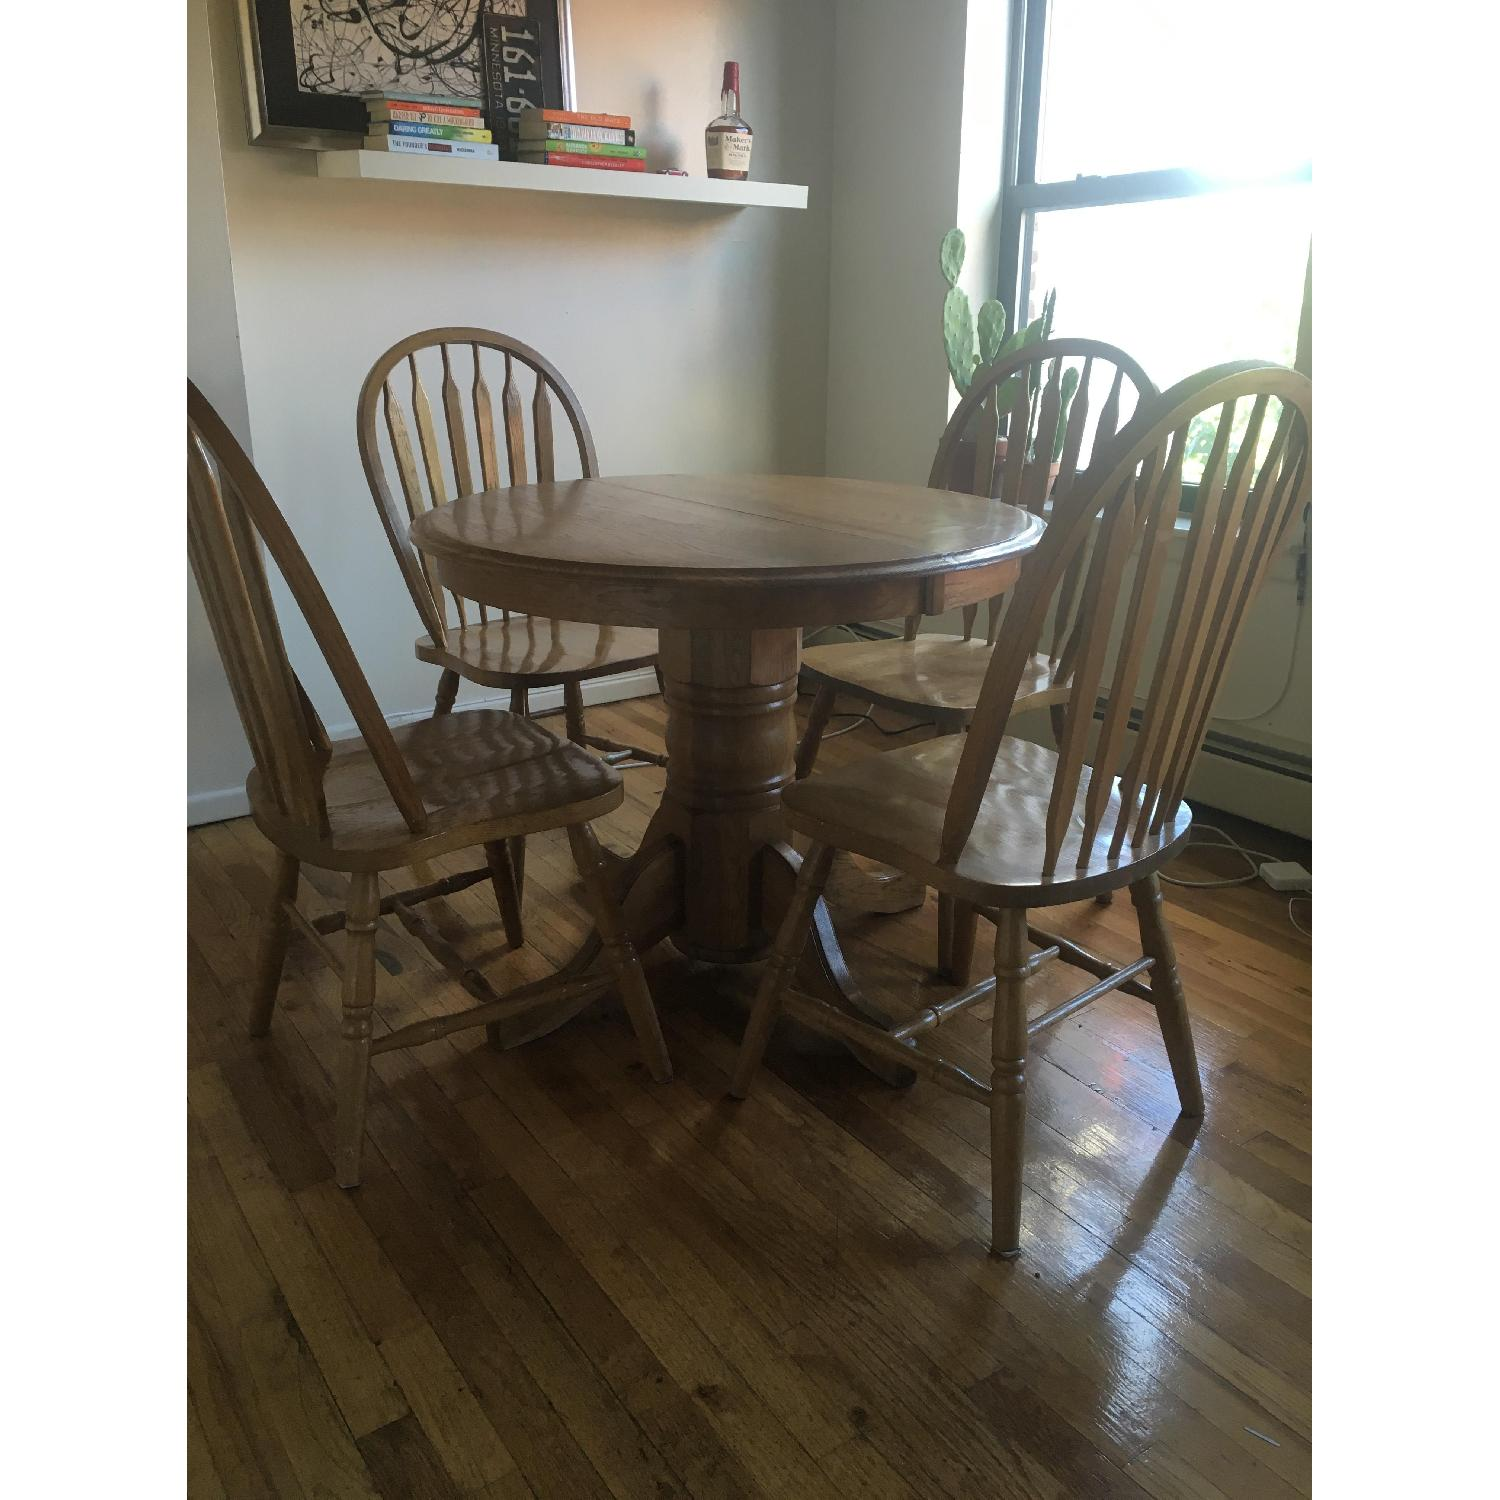 Oak Expandable Dining Table w/ 4 Chairs - image-1